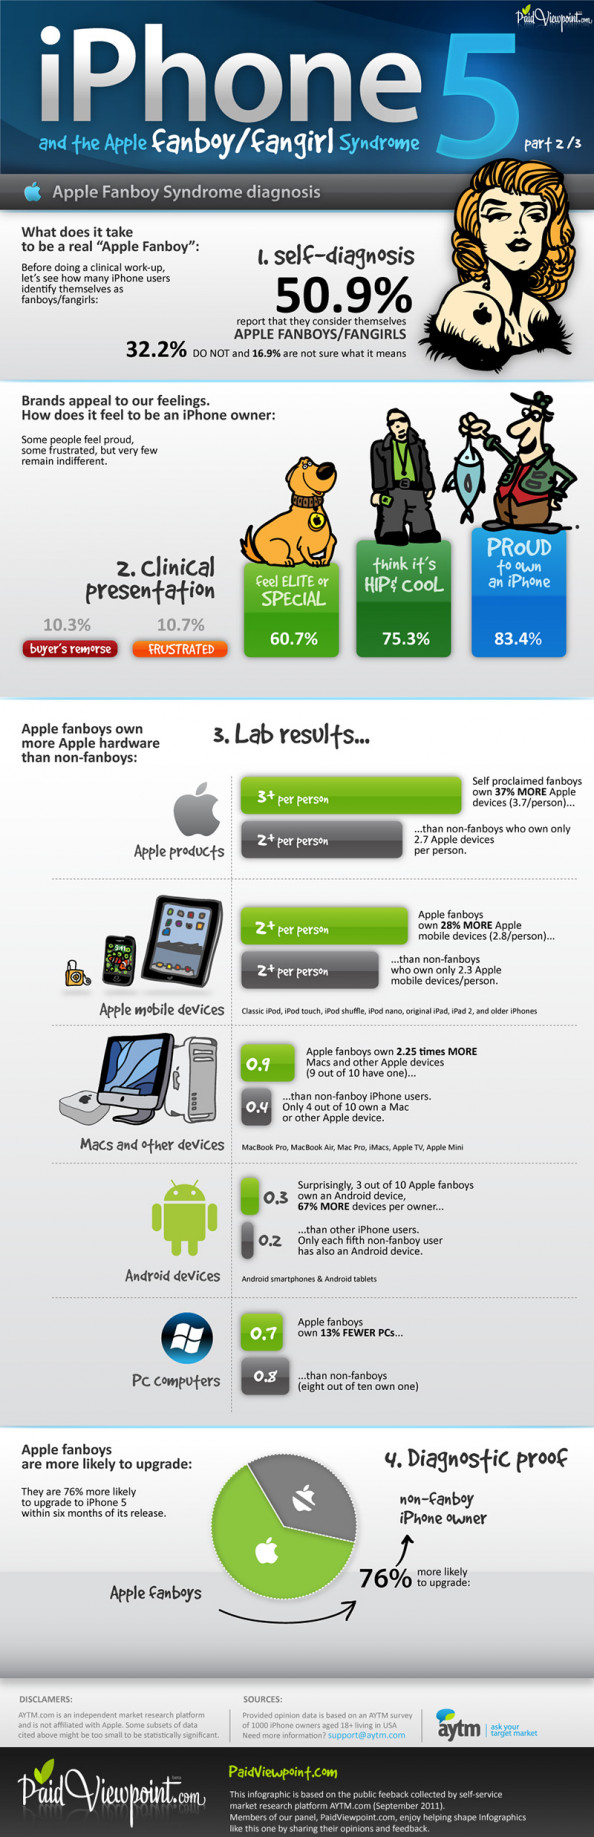 iPhone 5: Are You a Fanboy? Infographic